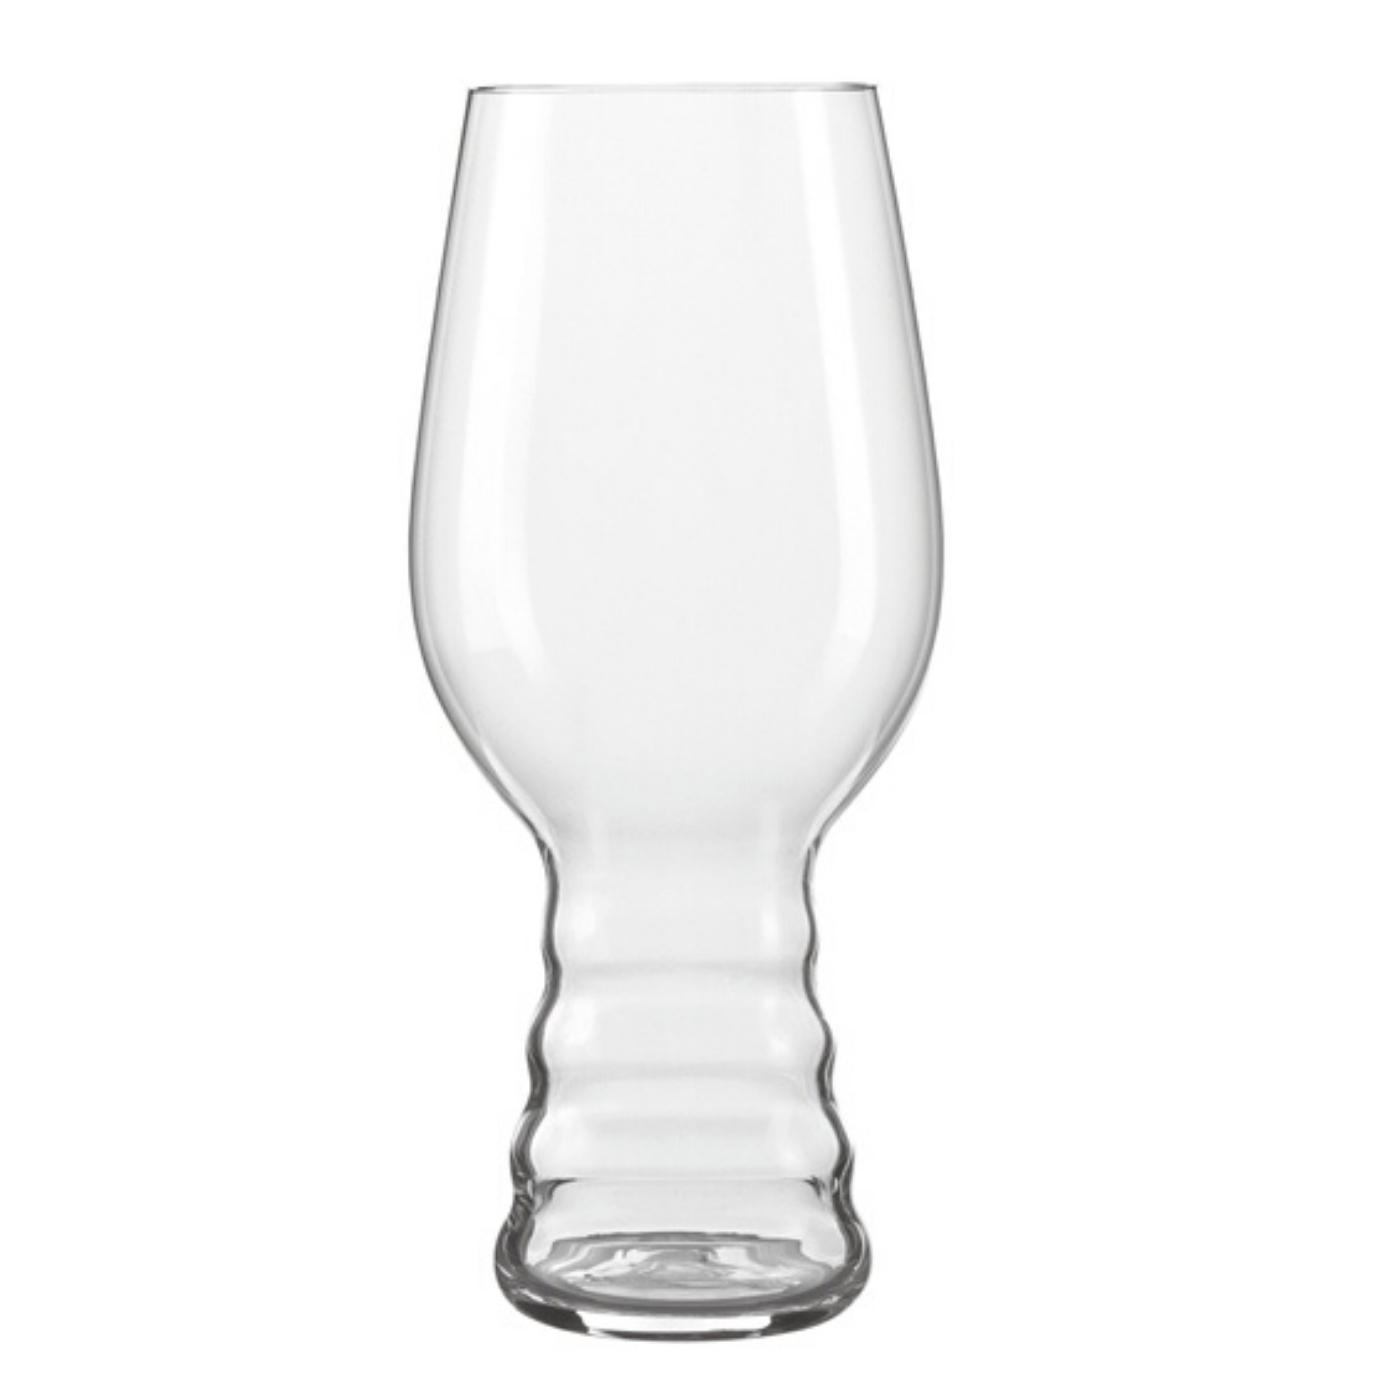 Spiegelau IPA Glasses (set of 4)